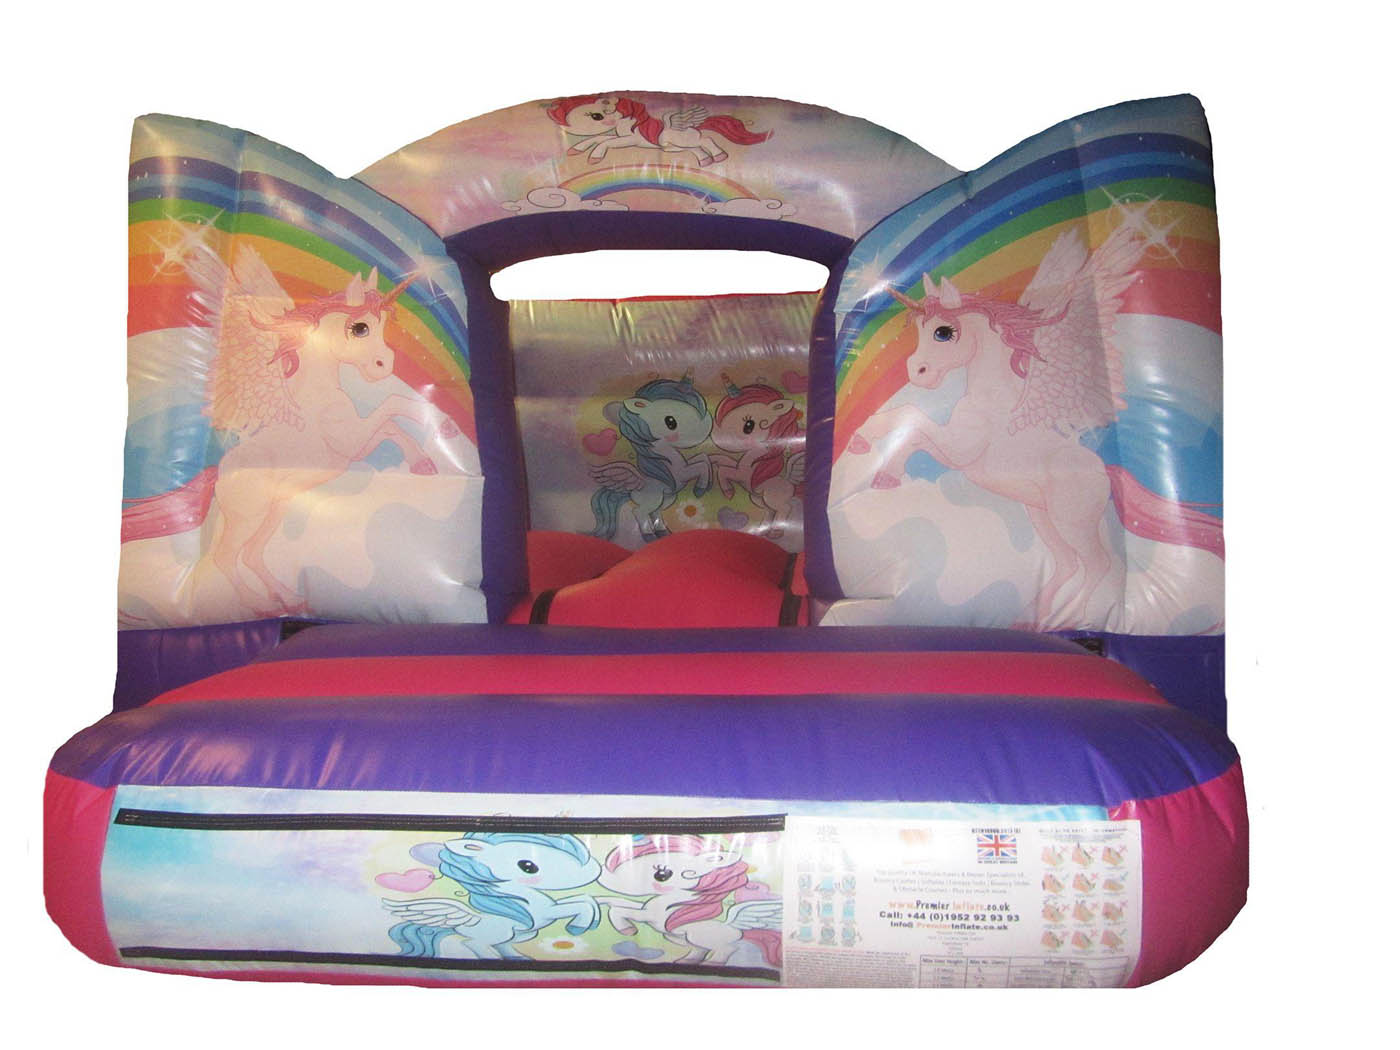 Toddler Bouncer with Unicorn themed Artwork